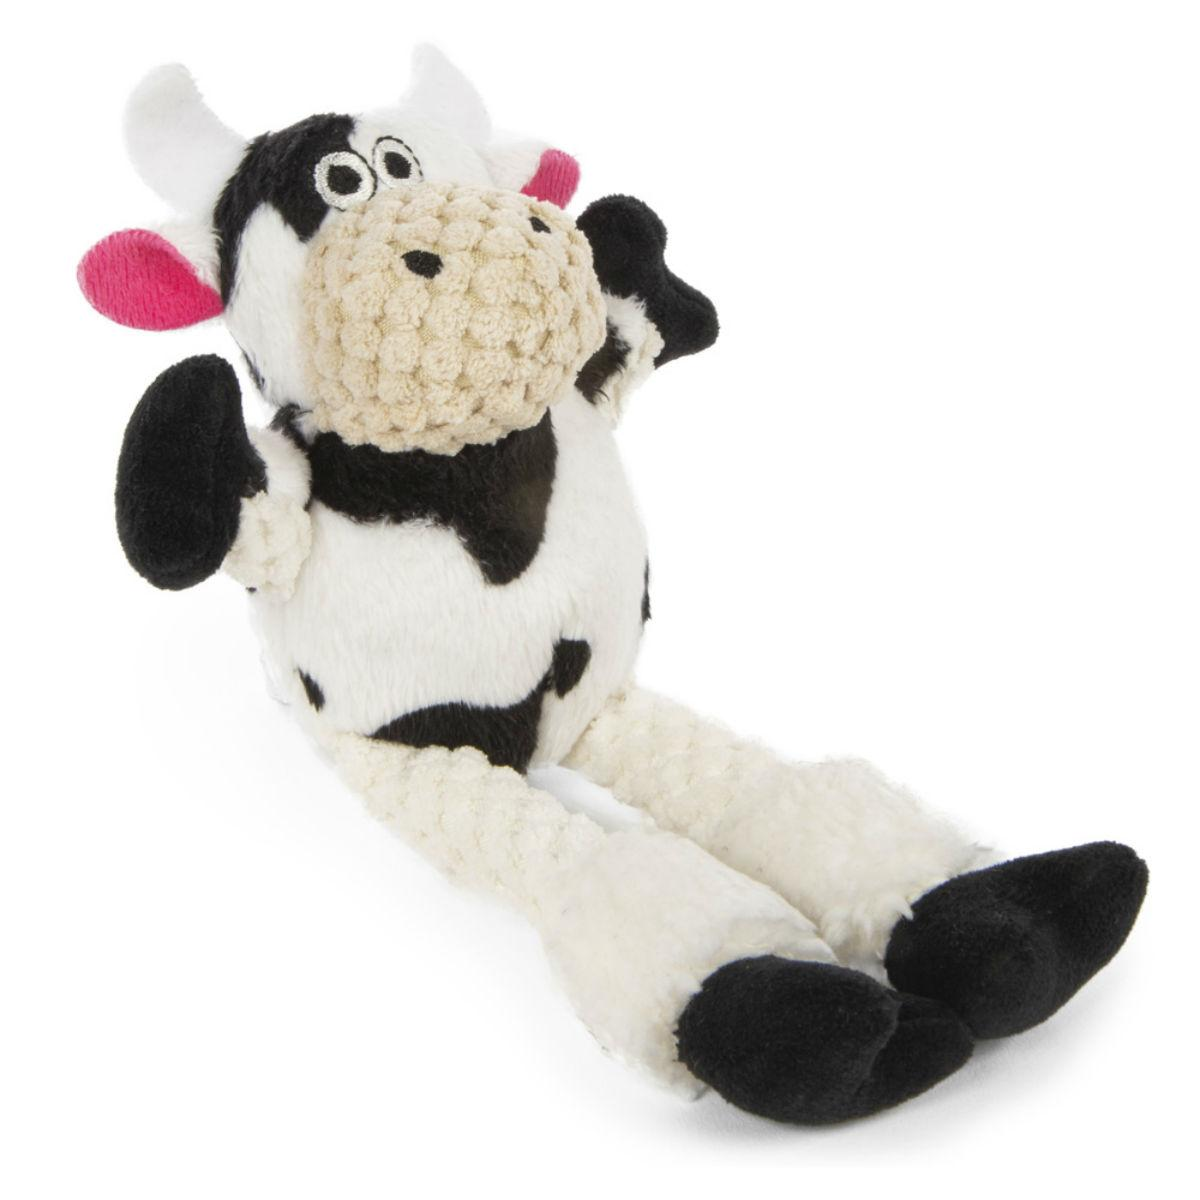 goDog Just for Me Checkers Skinny Dog Toy - Cow